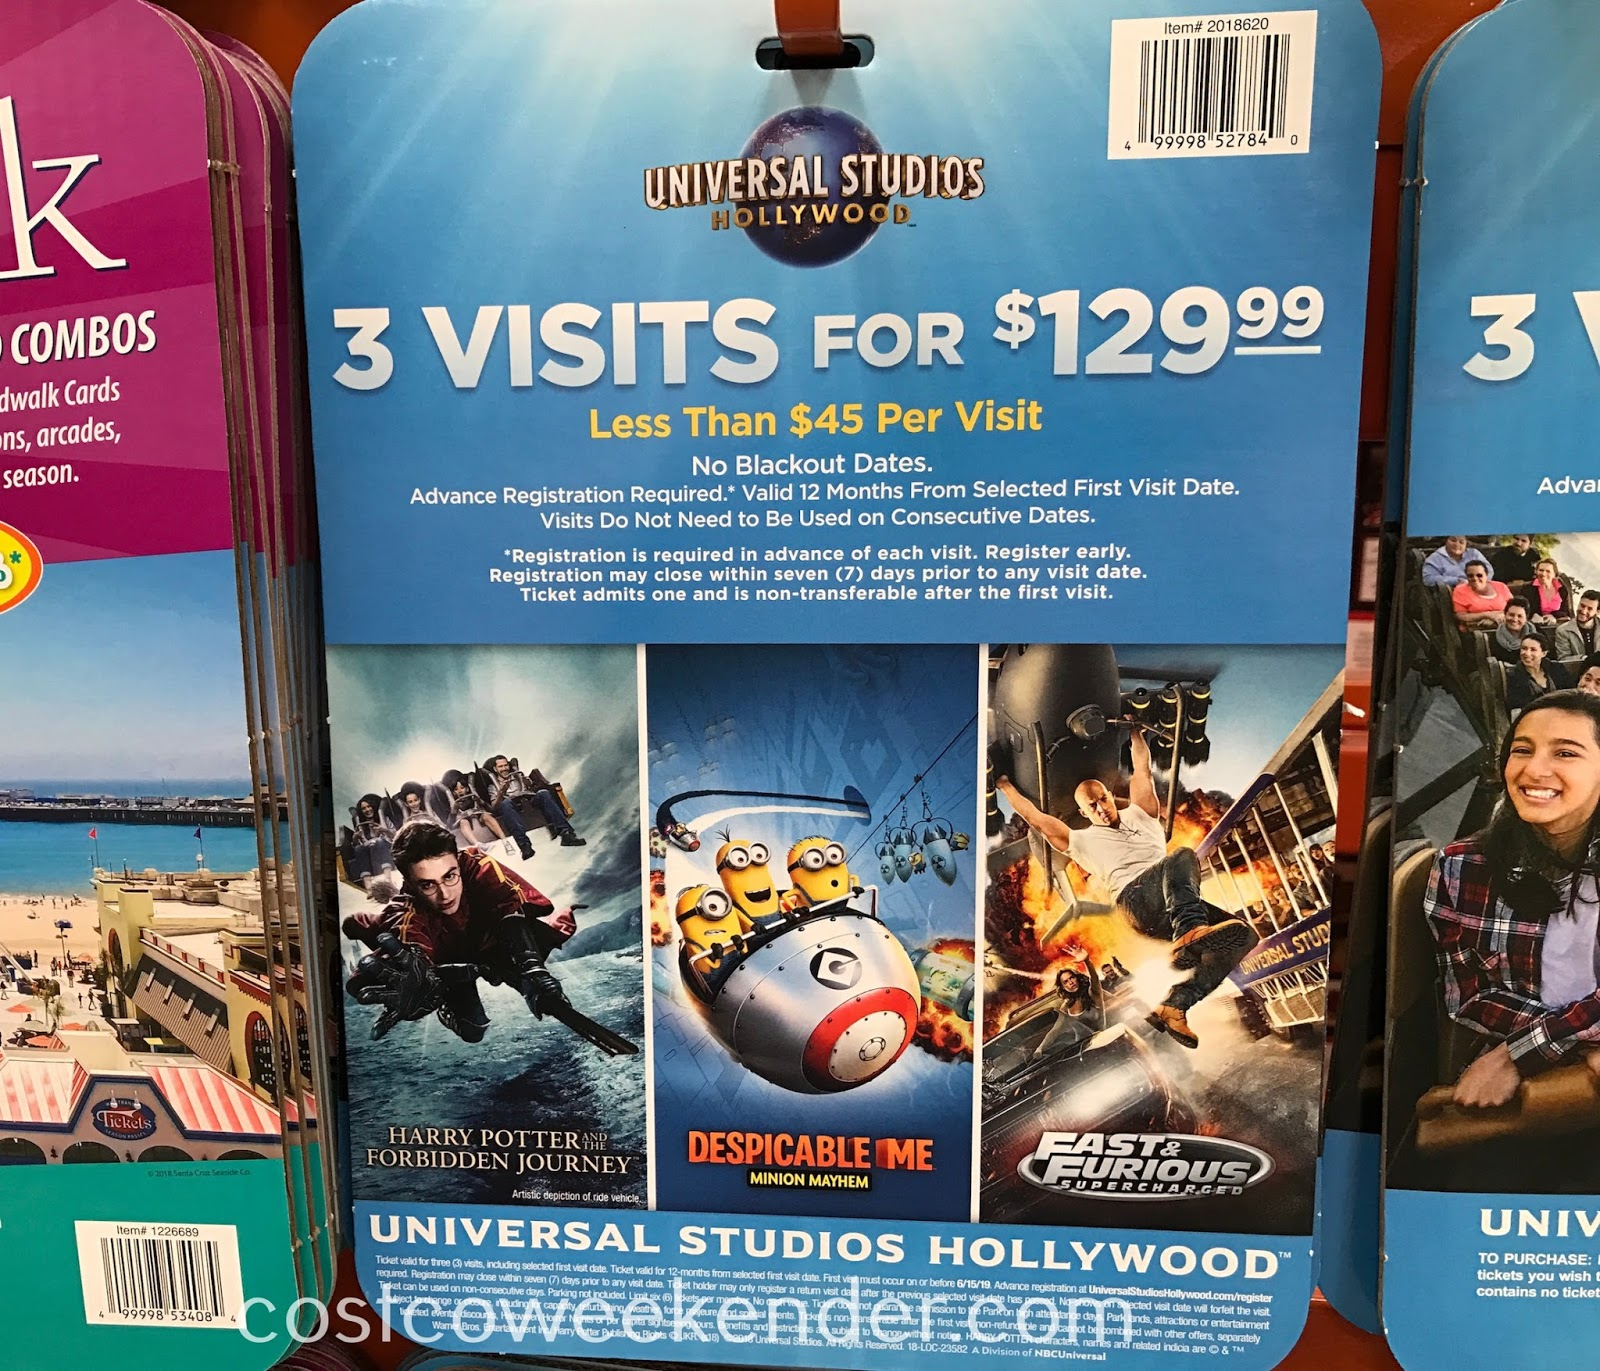 Costco 2018620 - Universal Studios Hollywood: a great park for all you movie fans